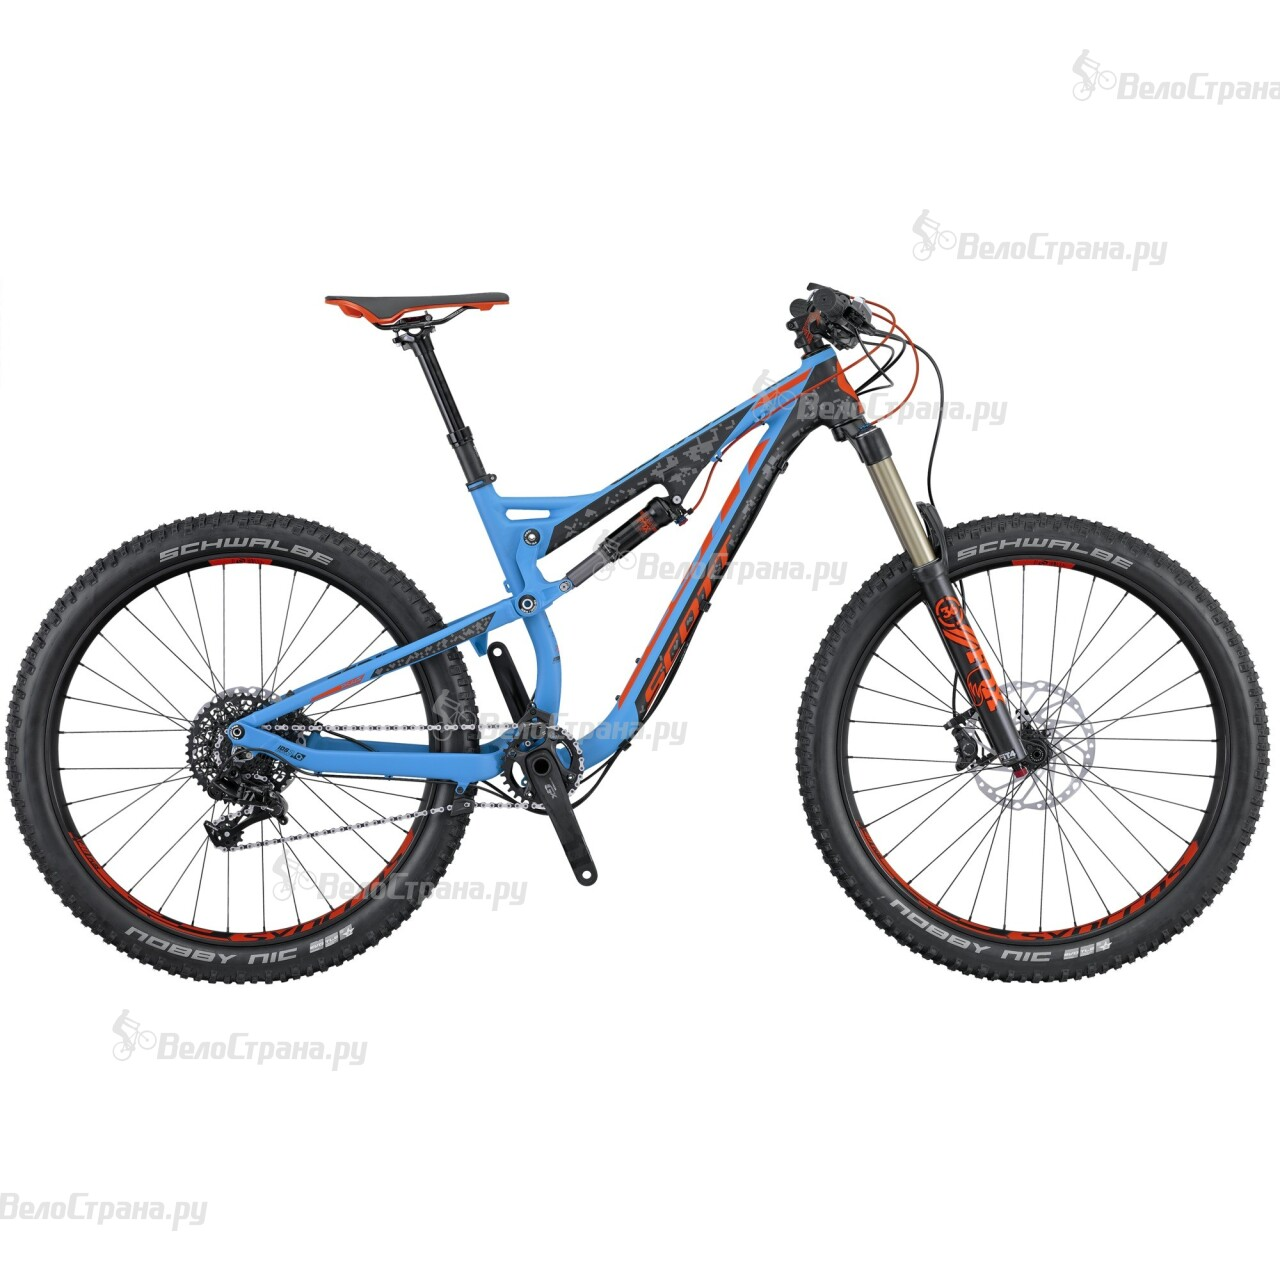 Велосипед Scott Genius LT 720 Plus (2016)